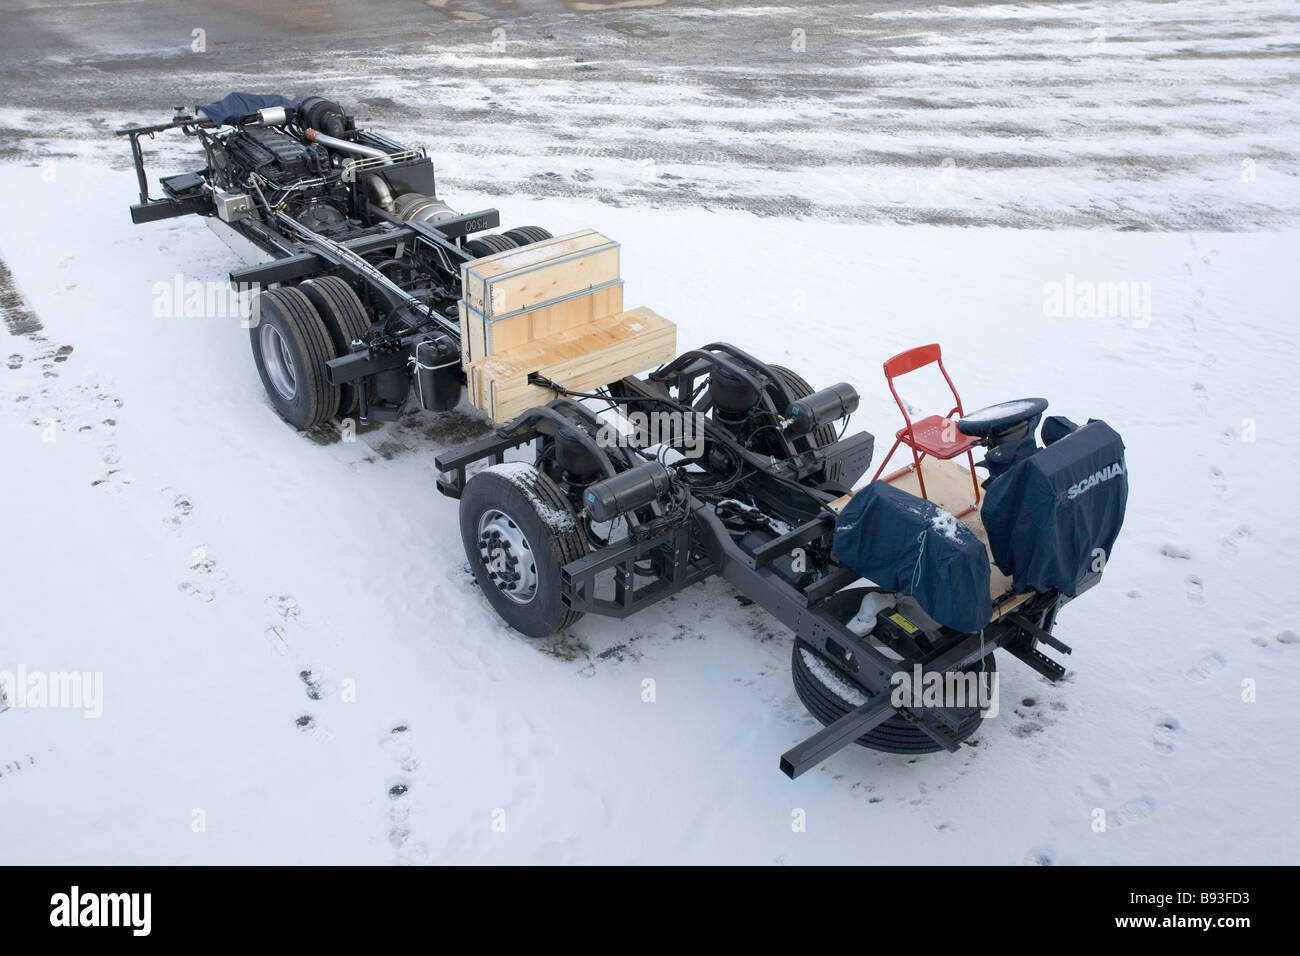 Scania truck frame outdoors Stock Photo: 22820255 - Alamy